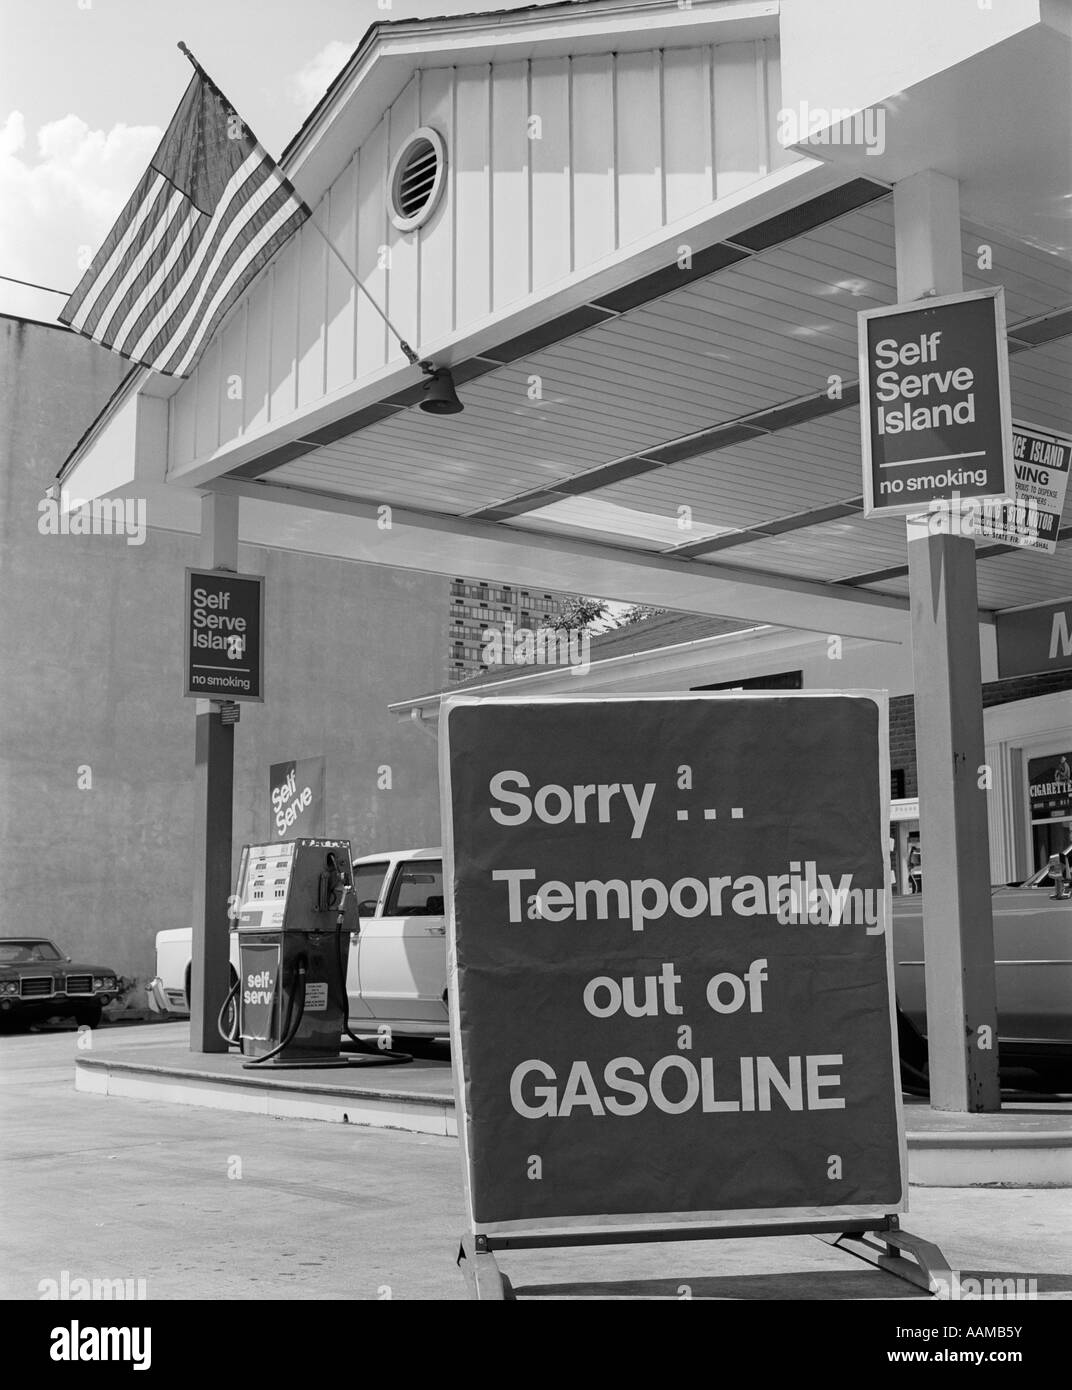 1970s SORRY TEMPORARILY OUT OF GASOLINE SIGN AT SELF SERVICE GAS STATION DURING 1973 OPEC OIL SHORTAGE CRISIS - Stock Image